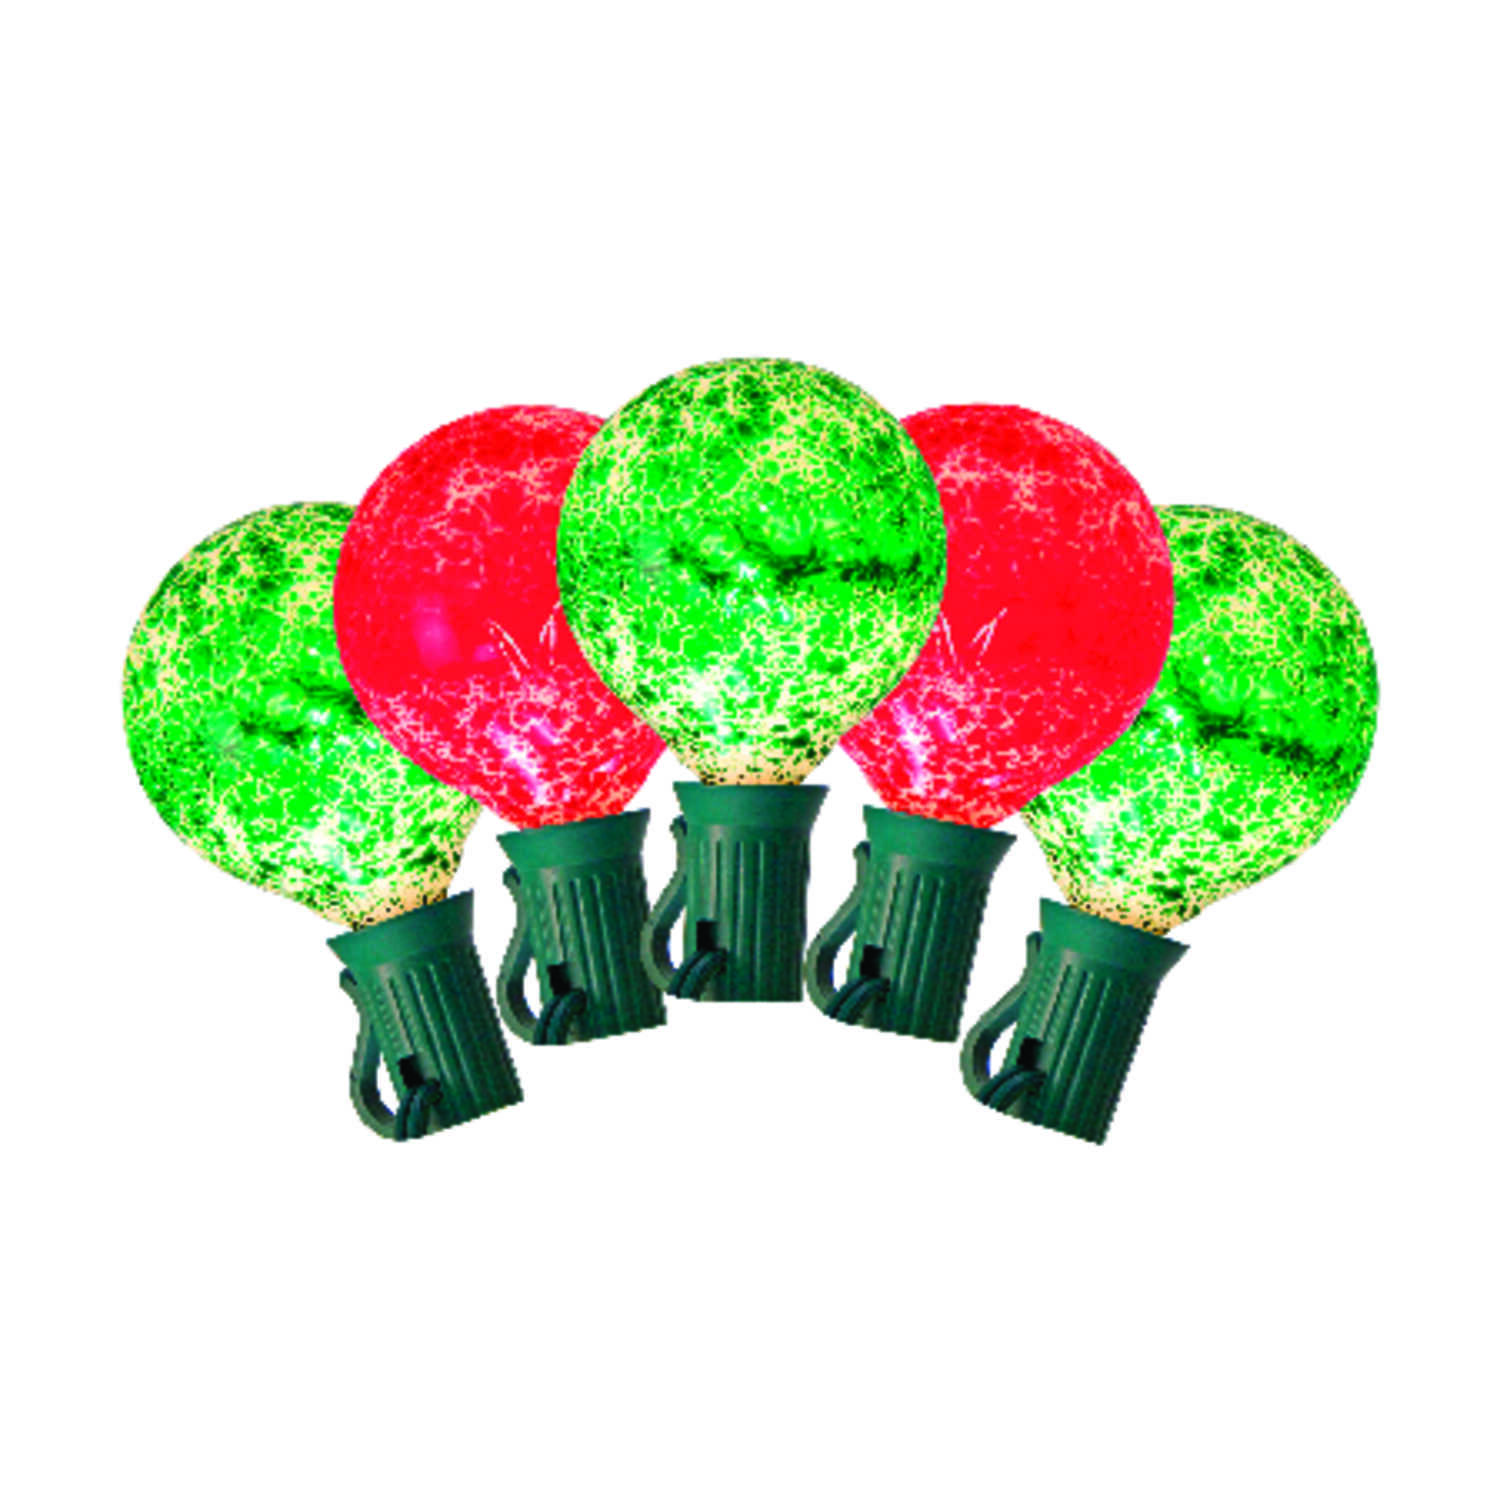 Celebrations  G50  LED  Light Set  Green/Red  9  10 lights